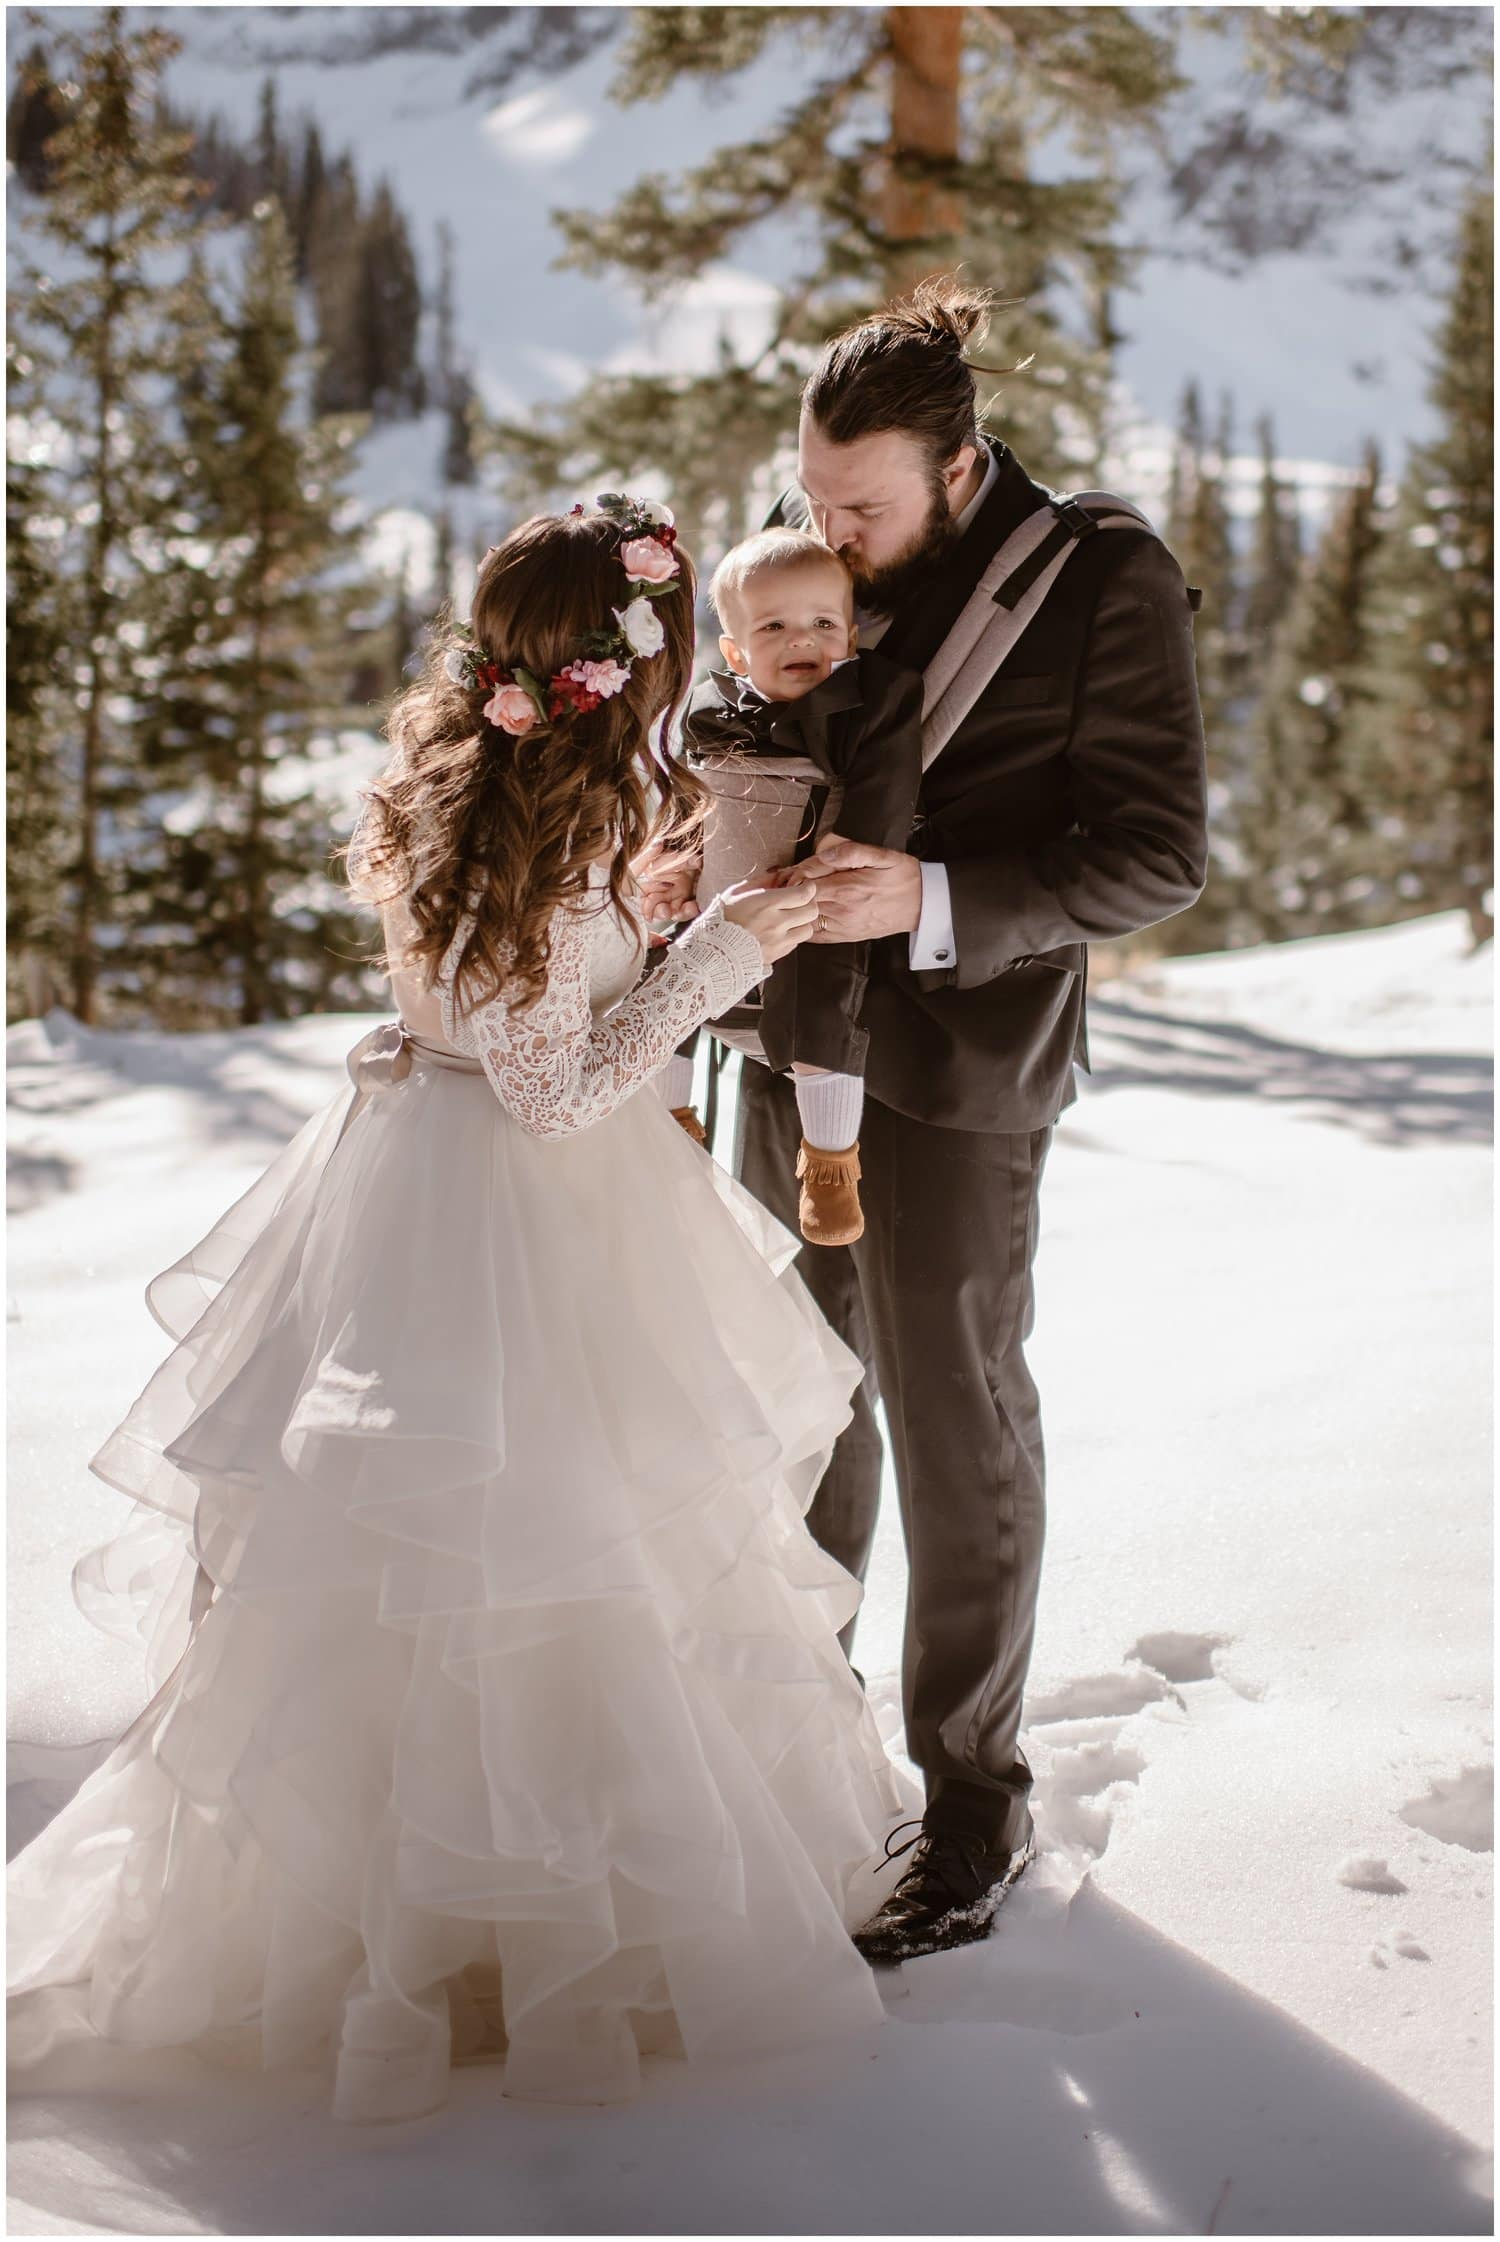 Bride and groom embrace their little baby in the mountains on their wedding day.